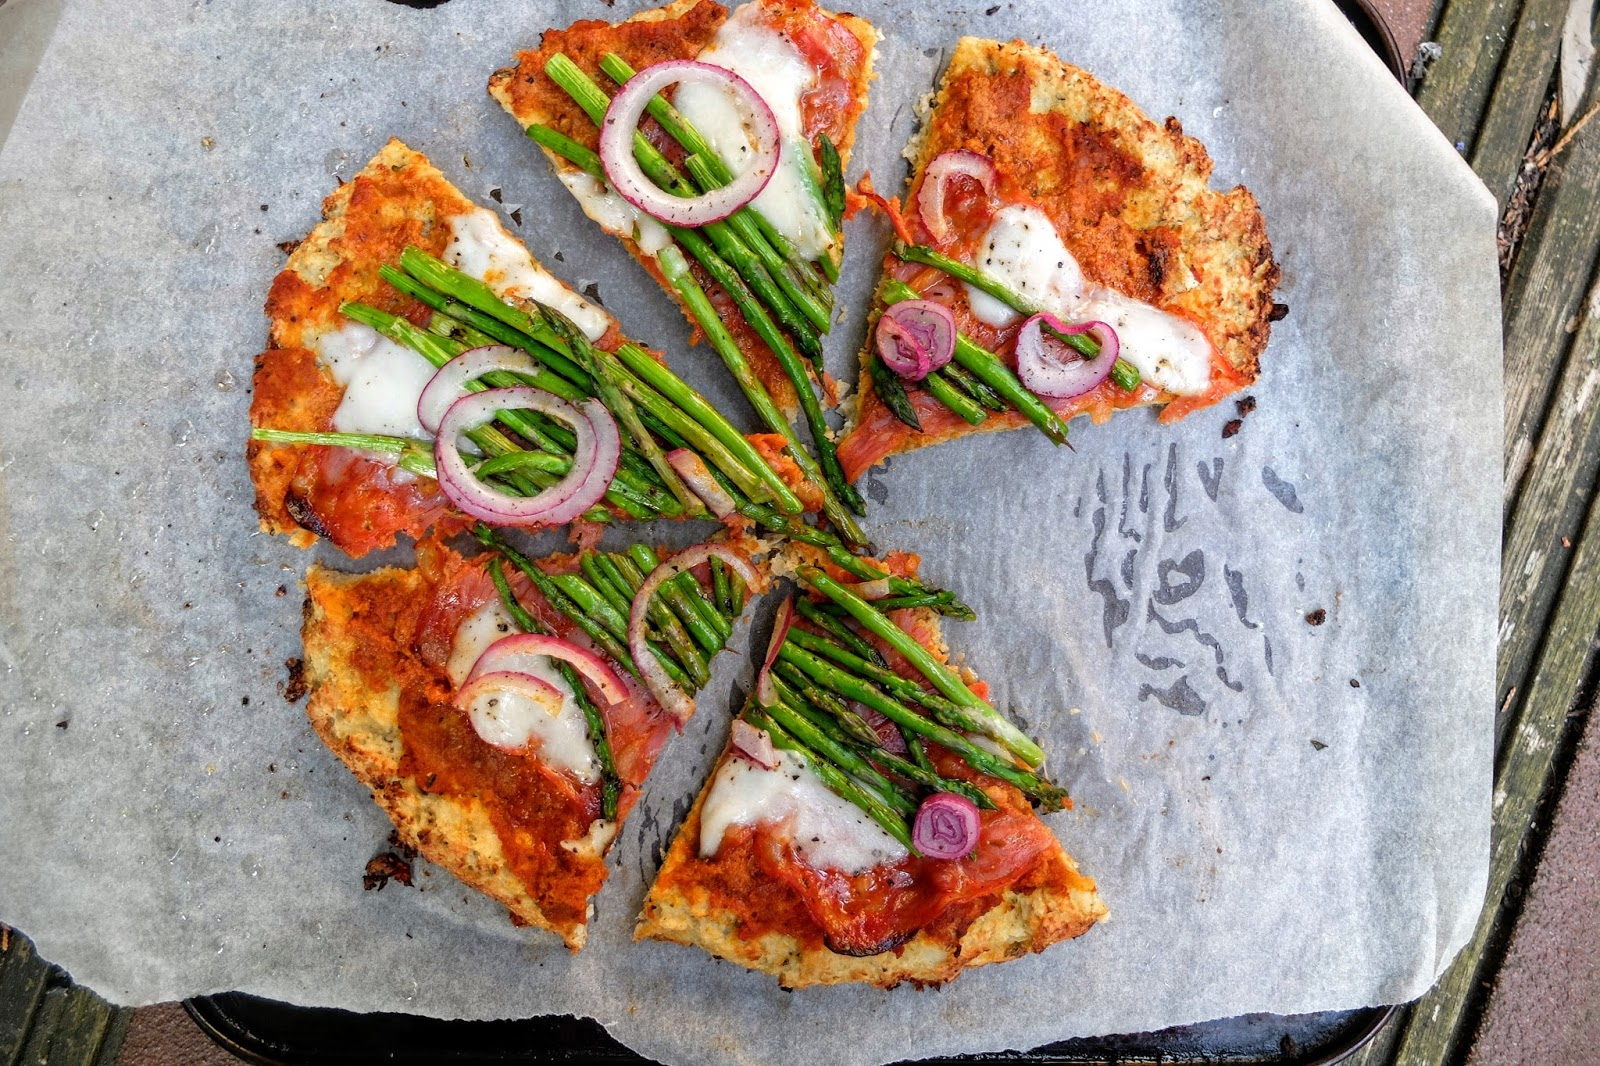 Slices of cauliflower crust pizza